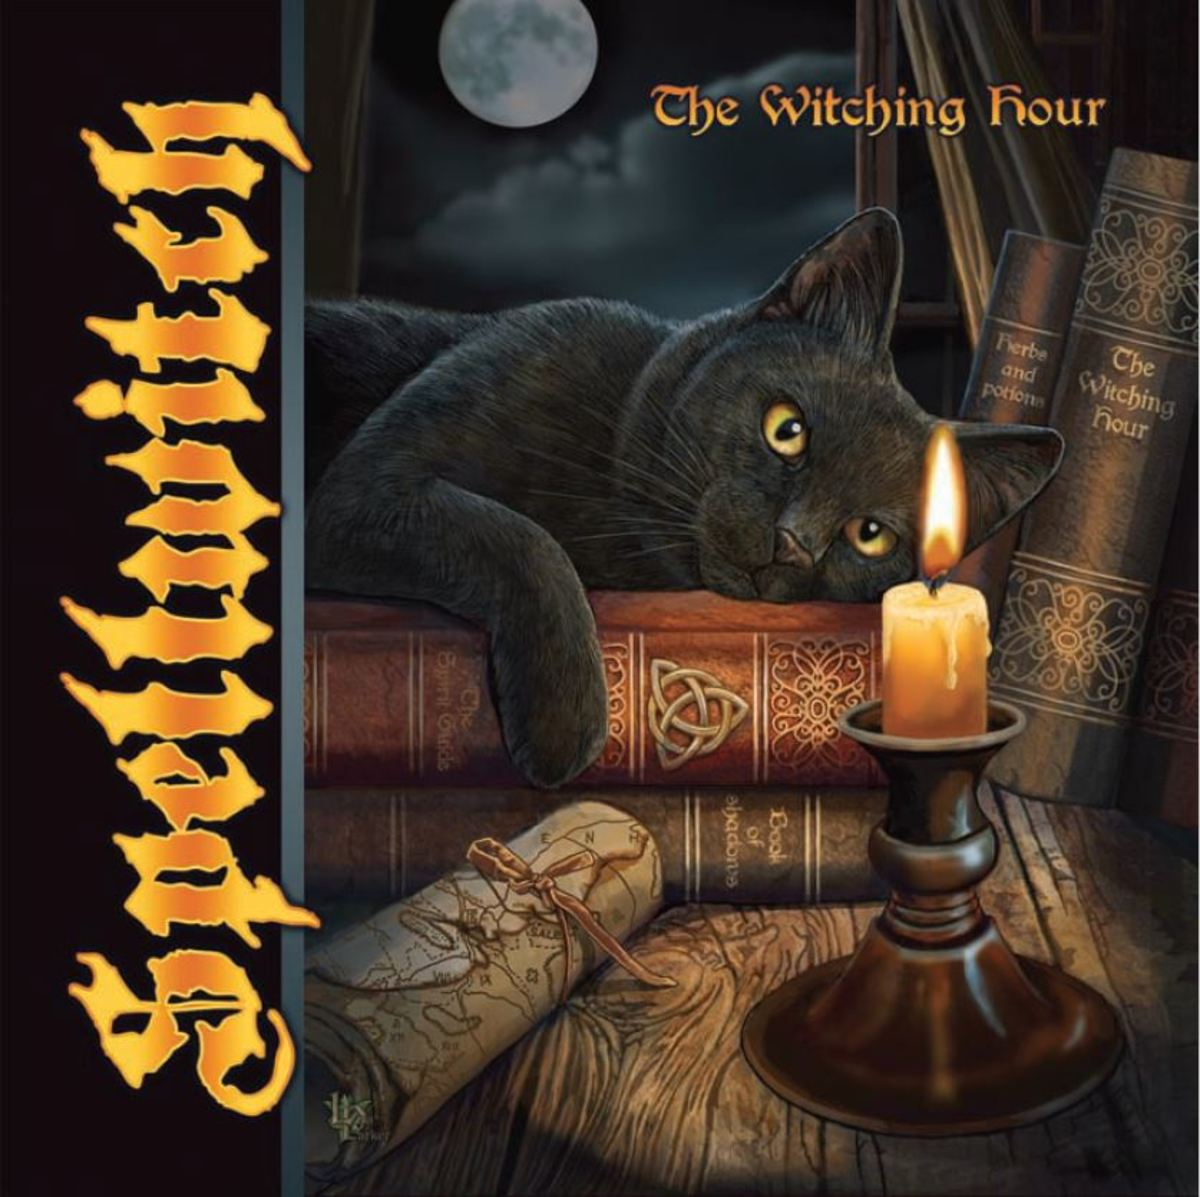 spellwitch-the-witching-hour-album-review-2018